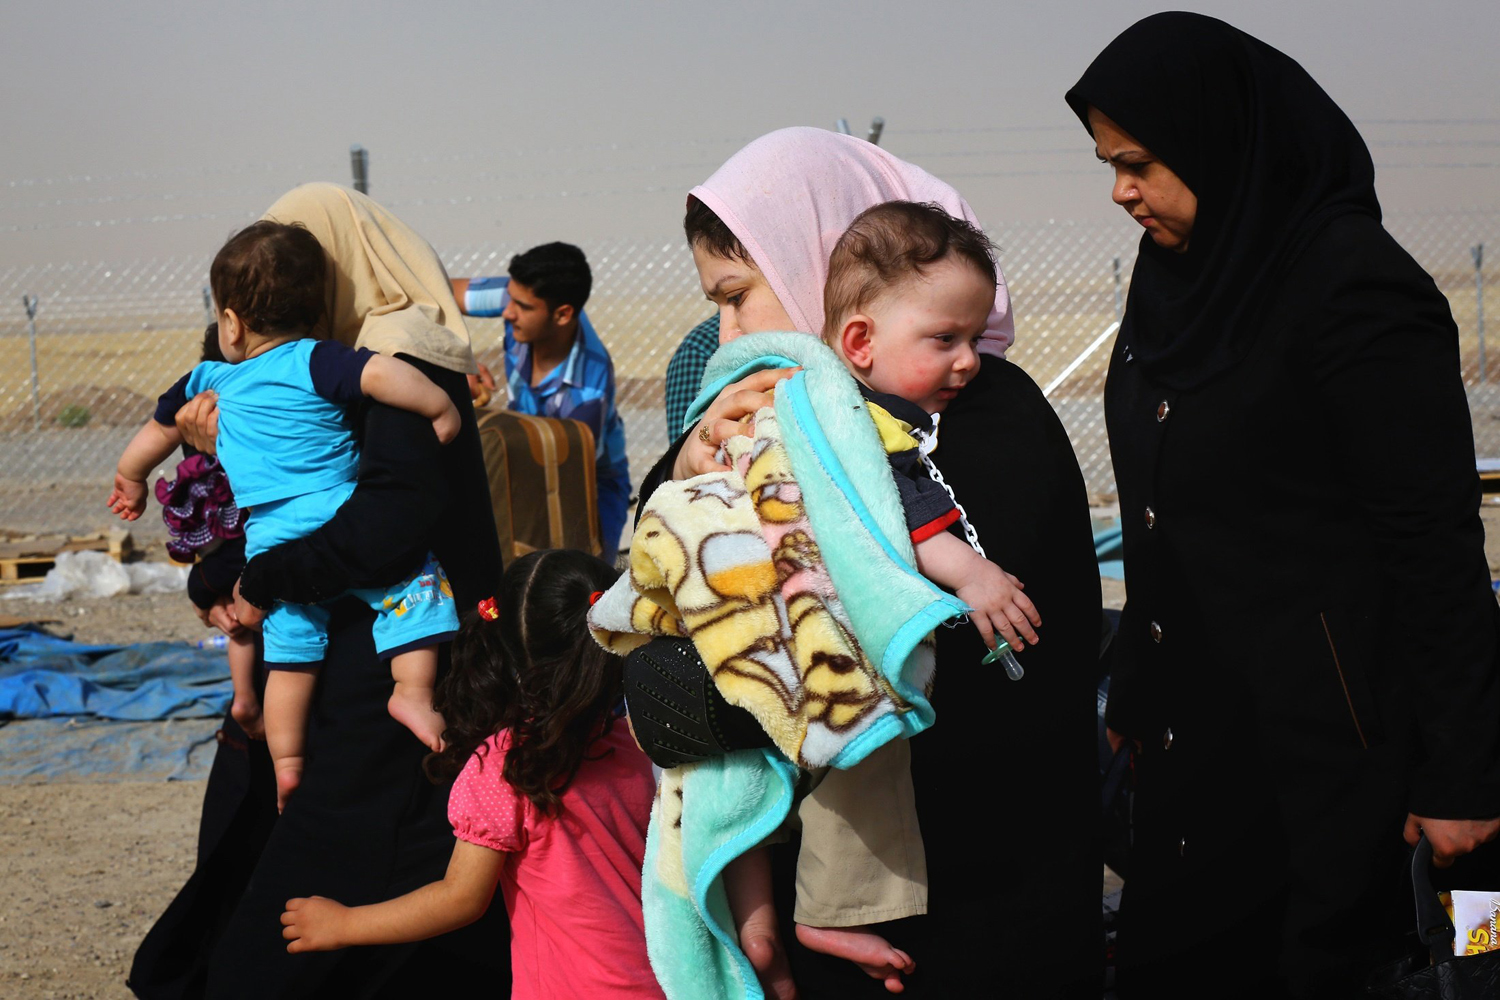 Families fleeing the violence in the Iraqi city of Mosul arrive at a checkpoint on the outskirts of Erbil, in Iraq's Kurdistan region June 12.